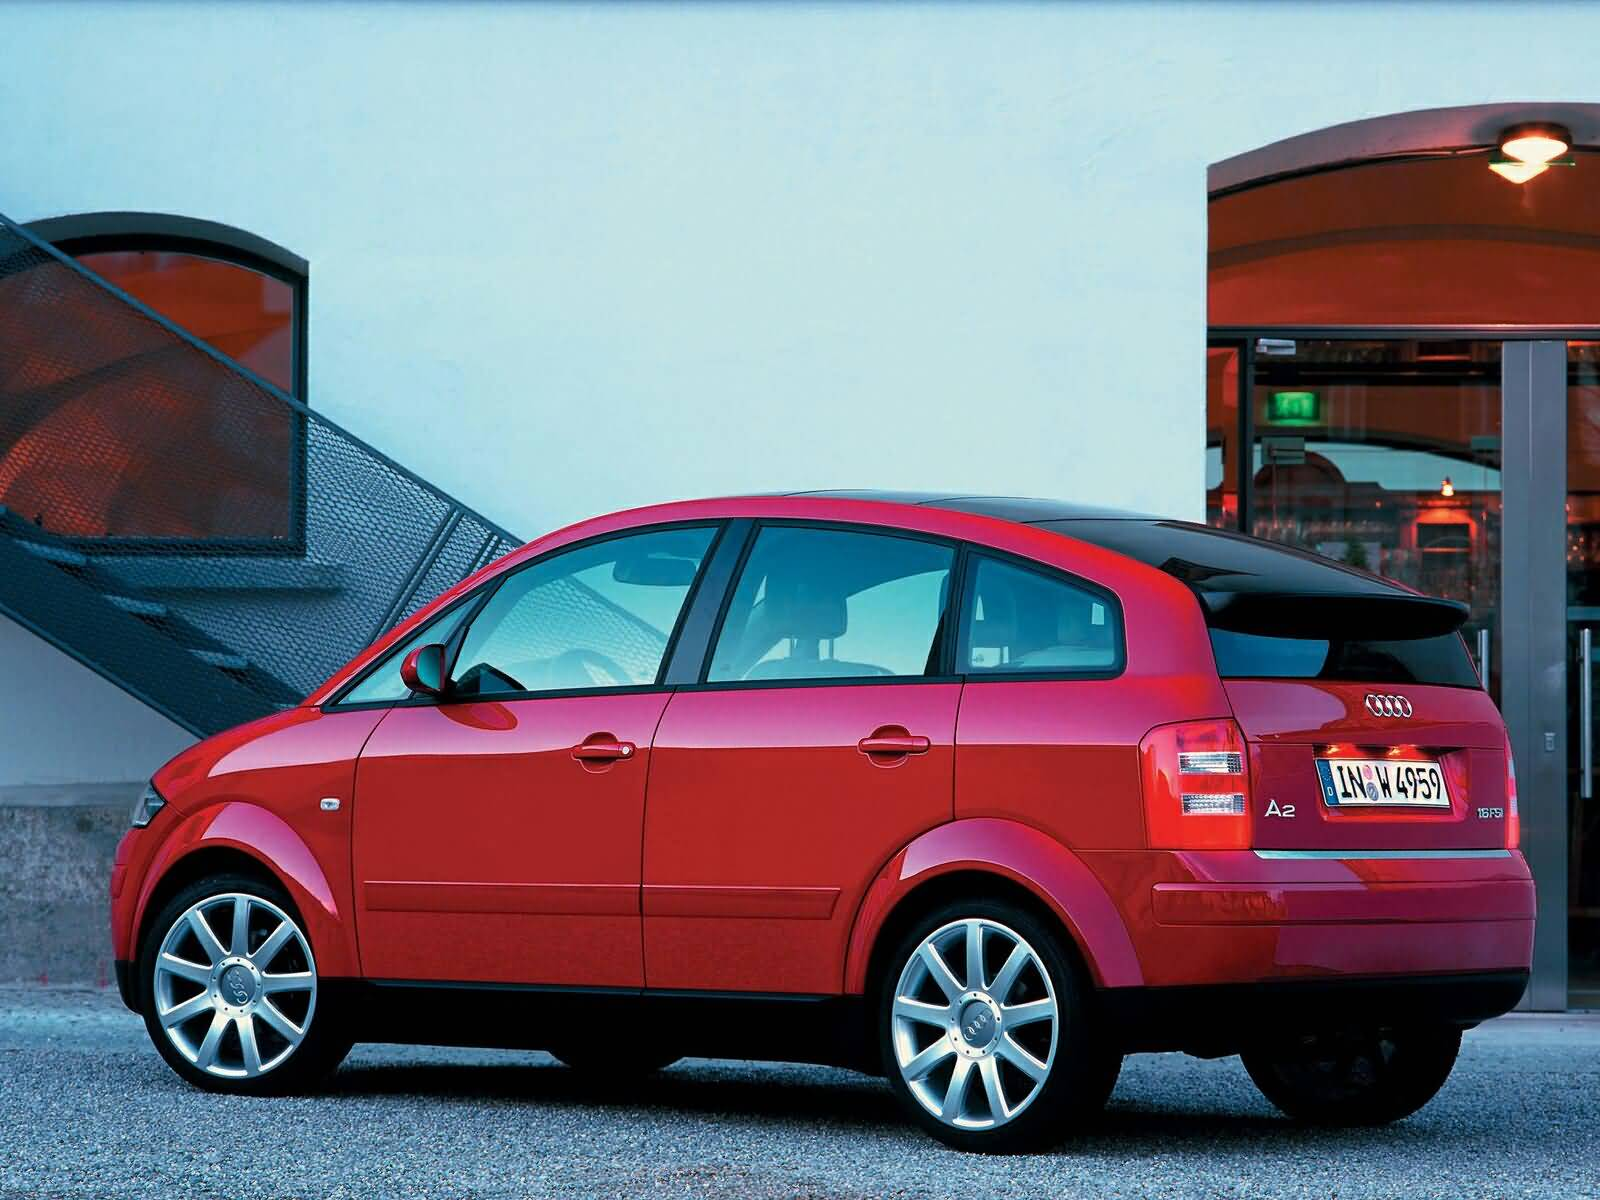 Left side view of nice red Audi A2 Car